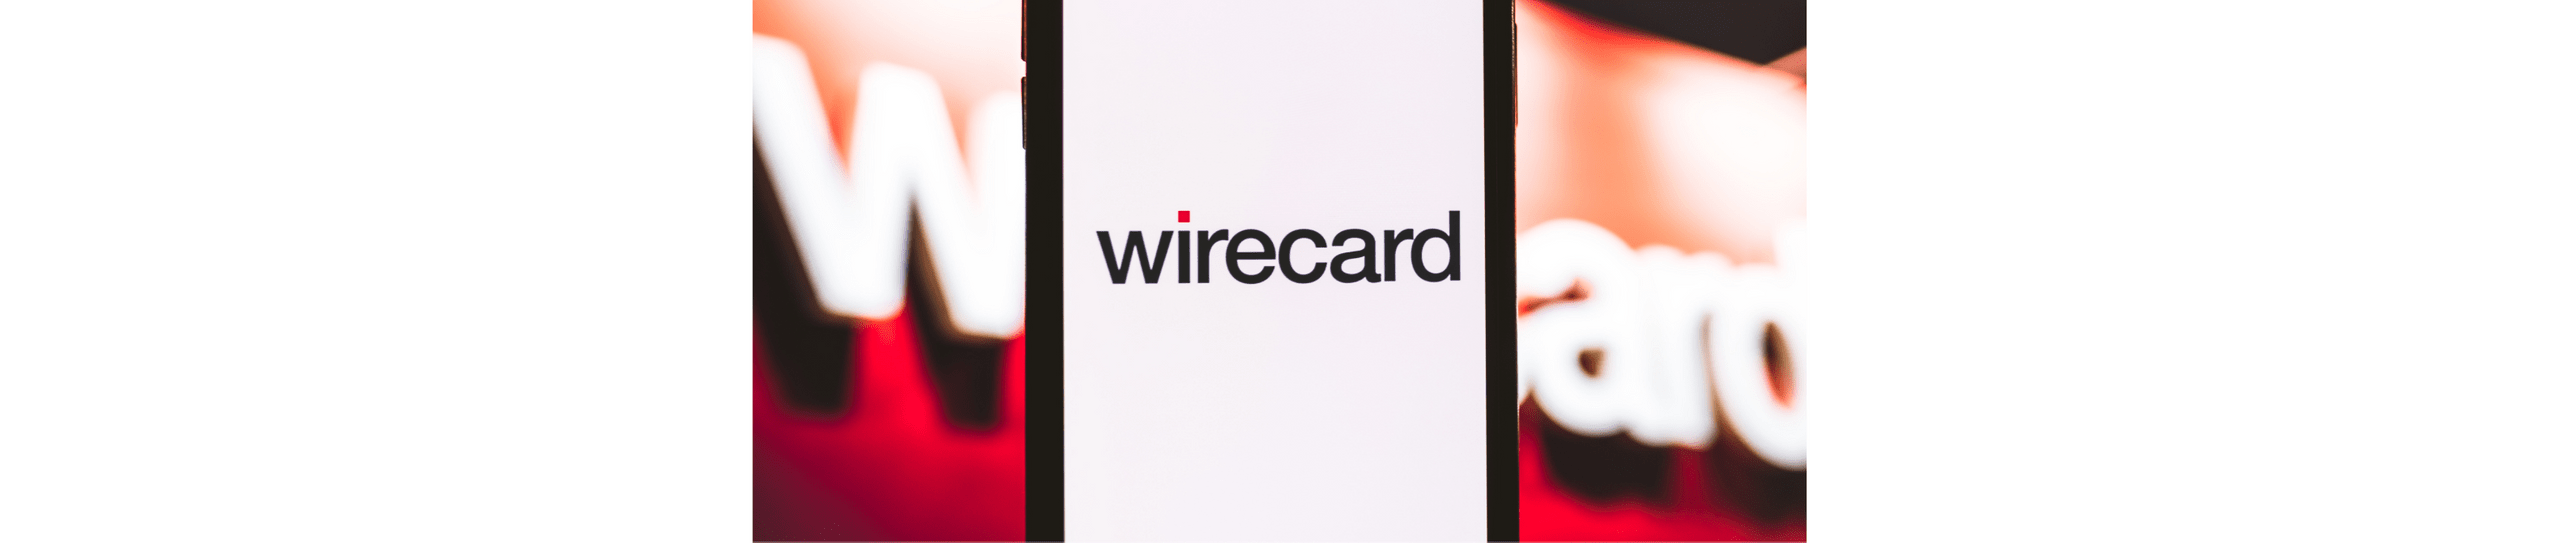 A banner image with a logo of wirecard in the centre